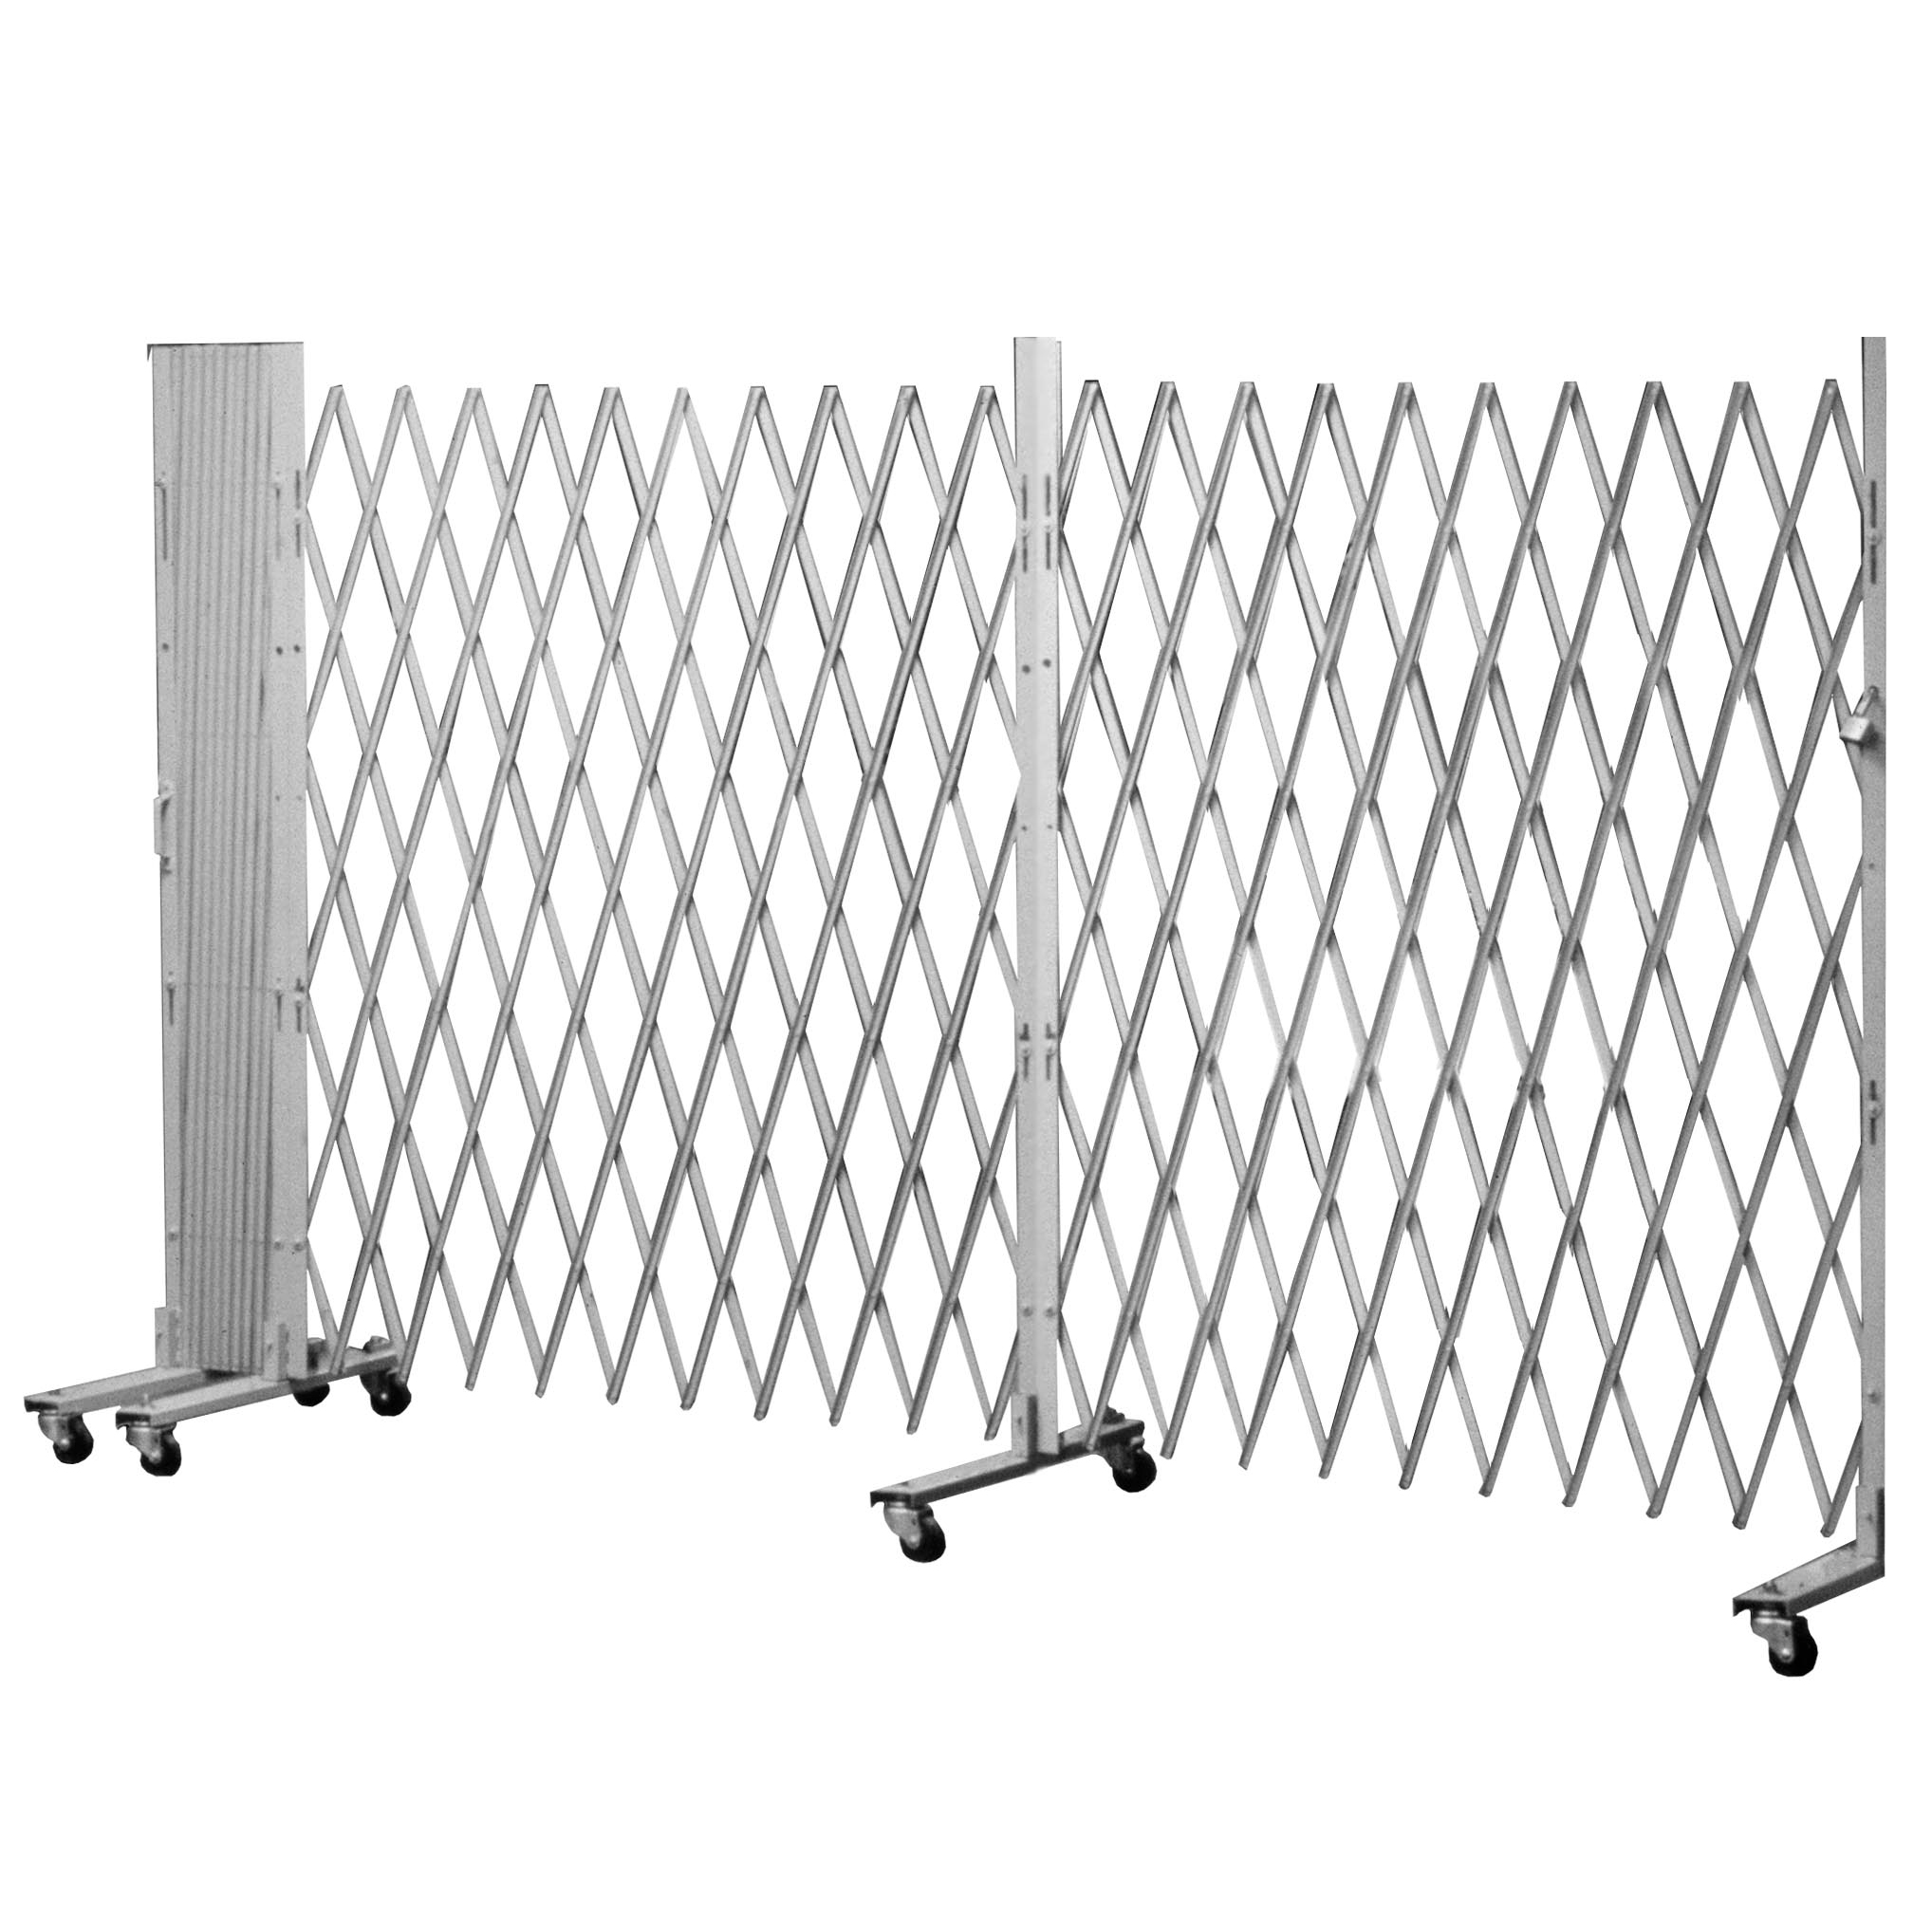 Portable Access Control Gates Illinois Engineered Products